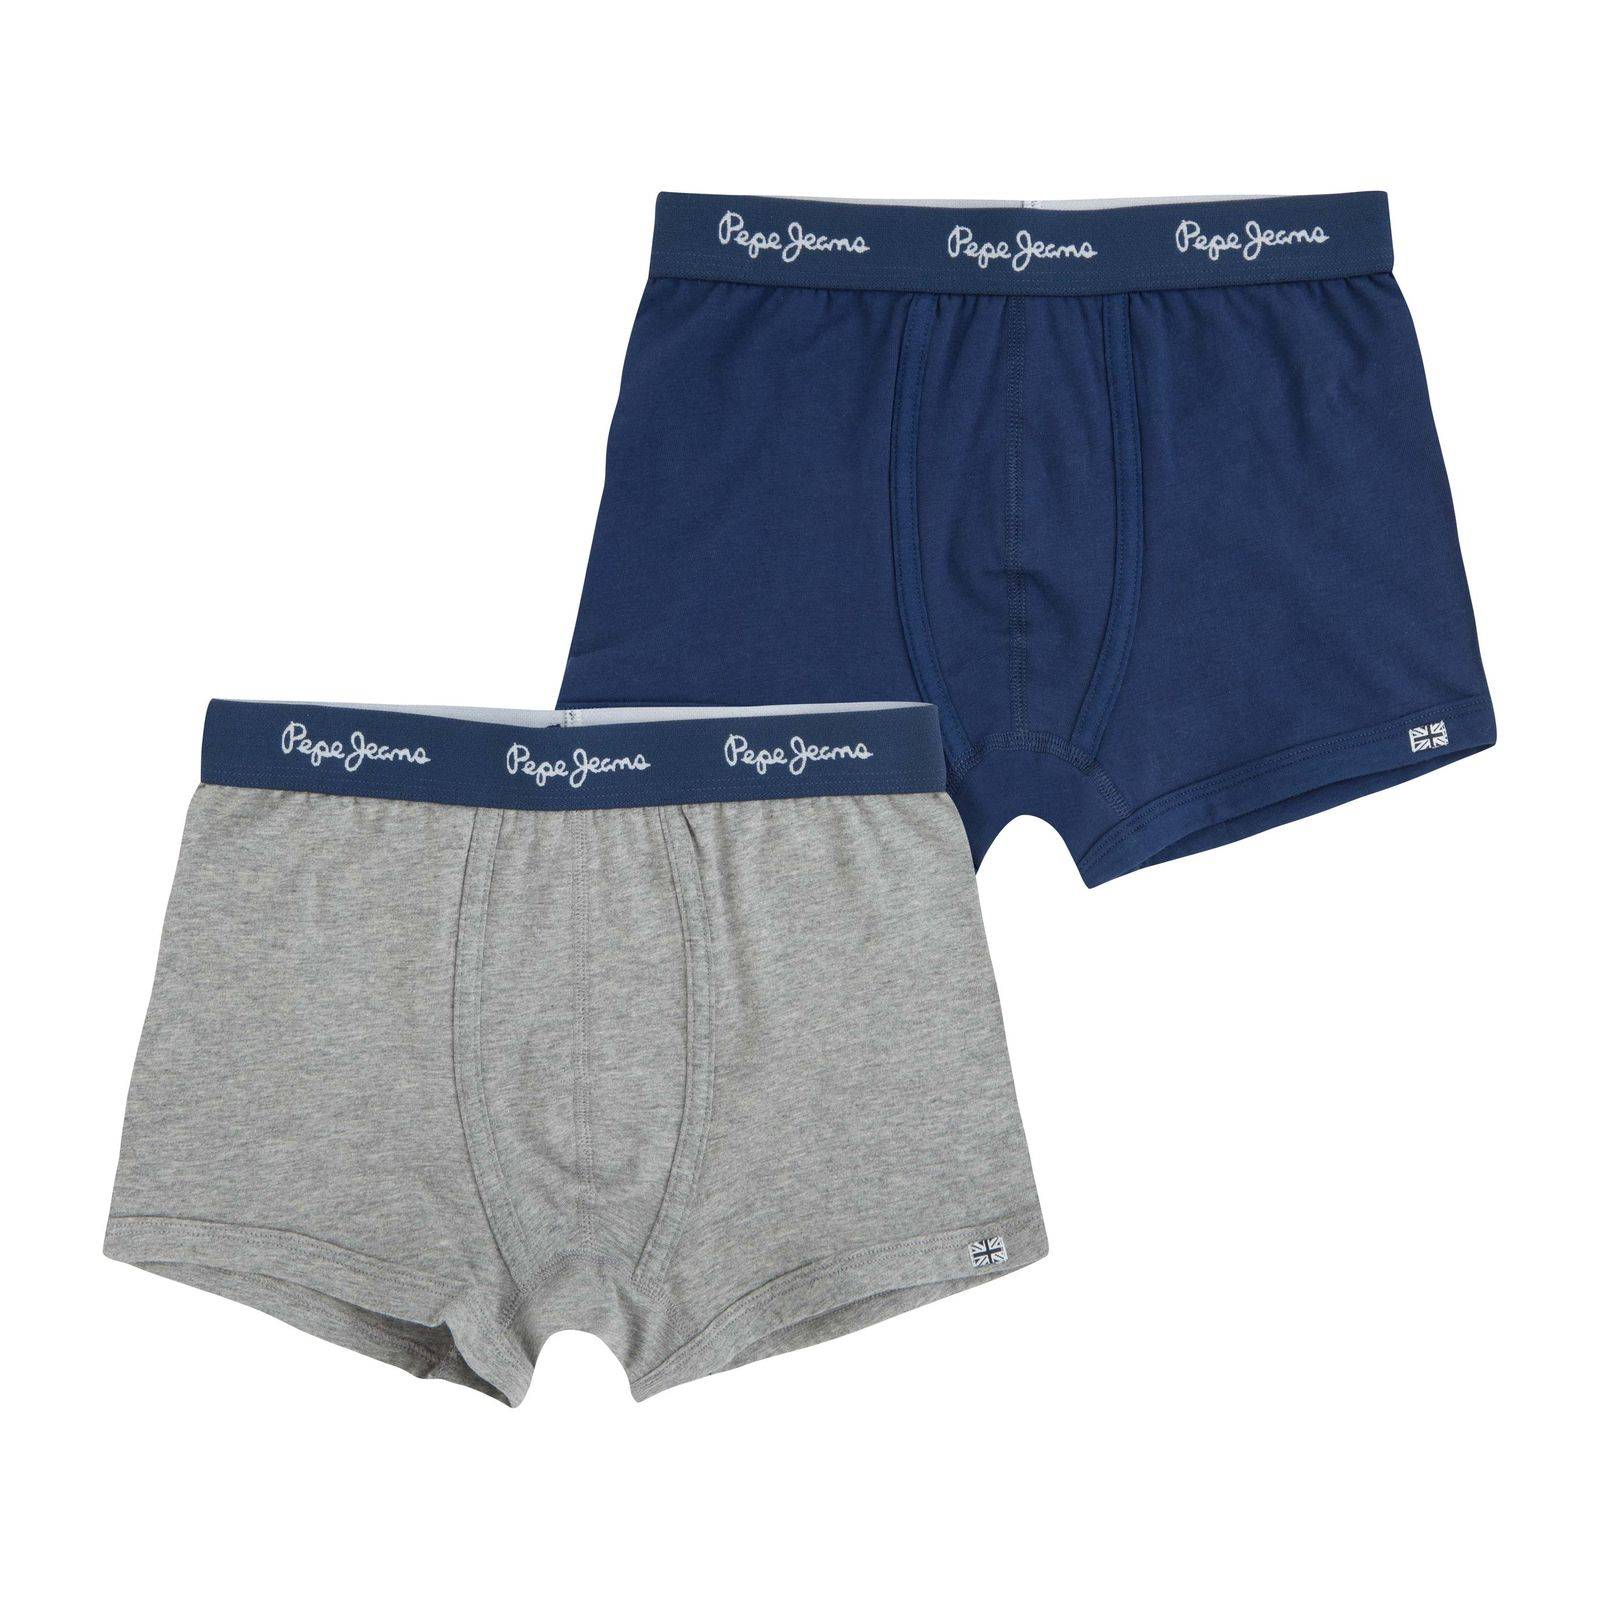 Pepe Jeans London Grays pack de 2 - Boxer - multicolore